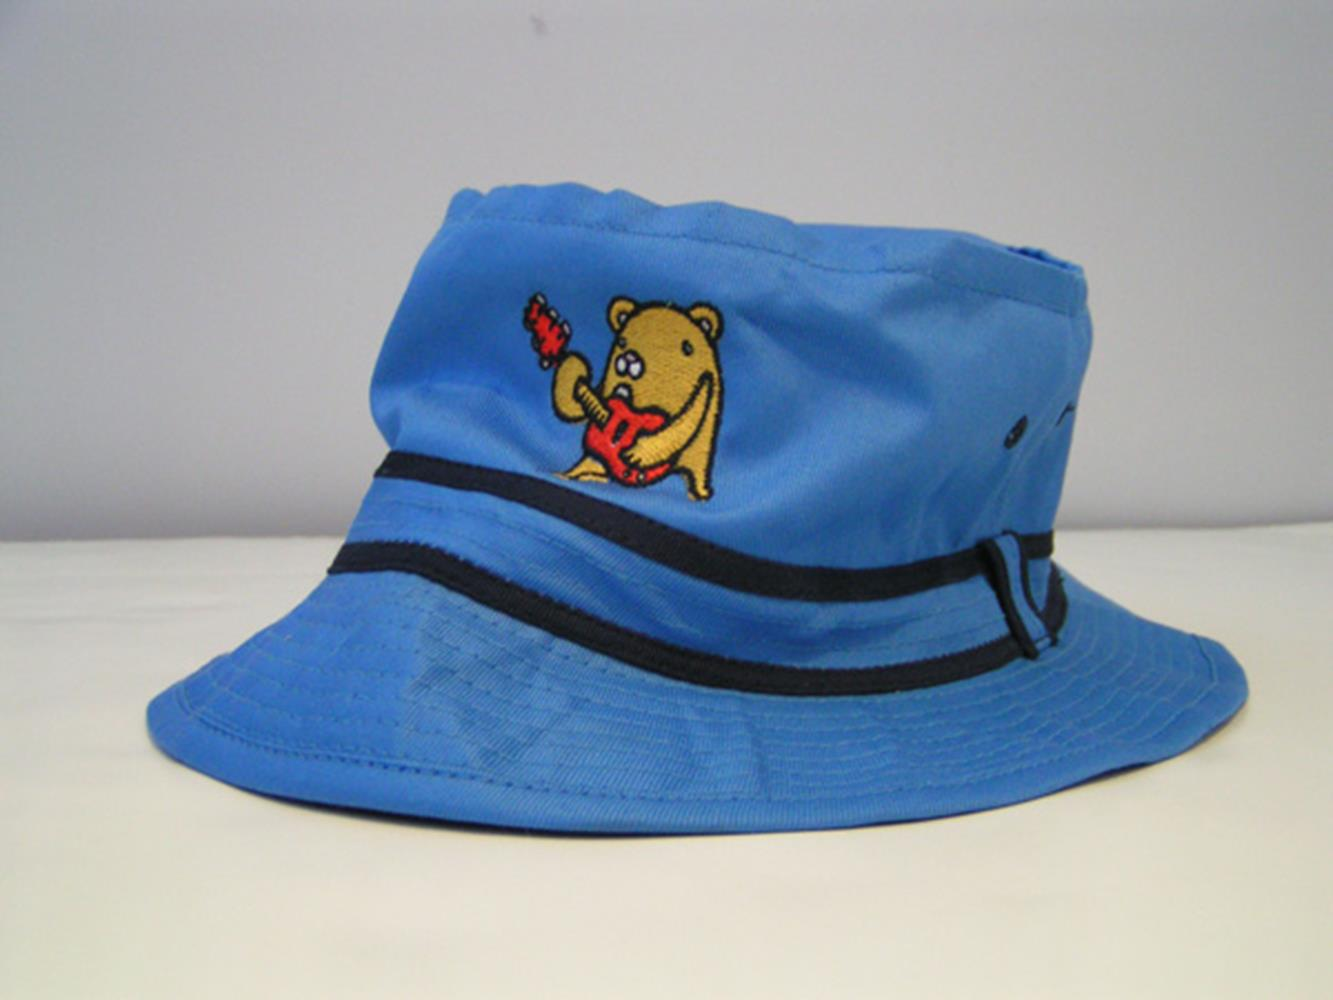 Moe.Down 8 Blue Bucket Hat